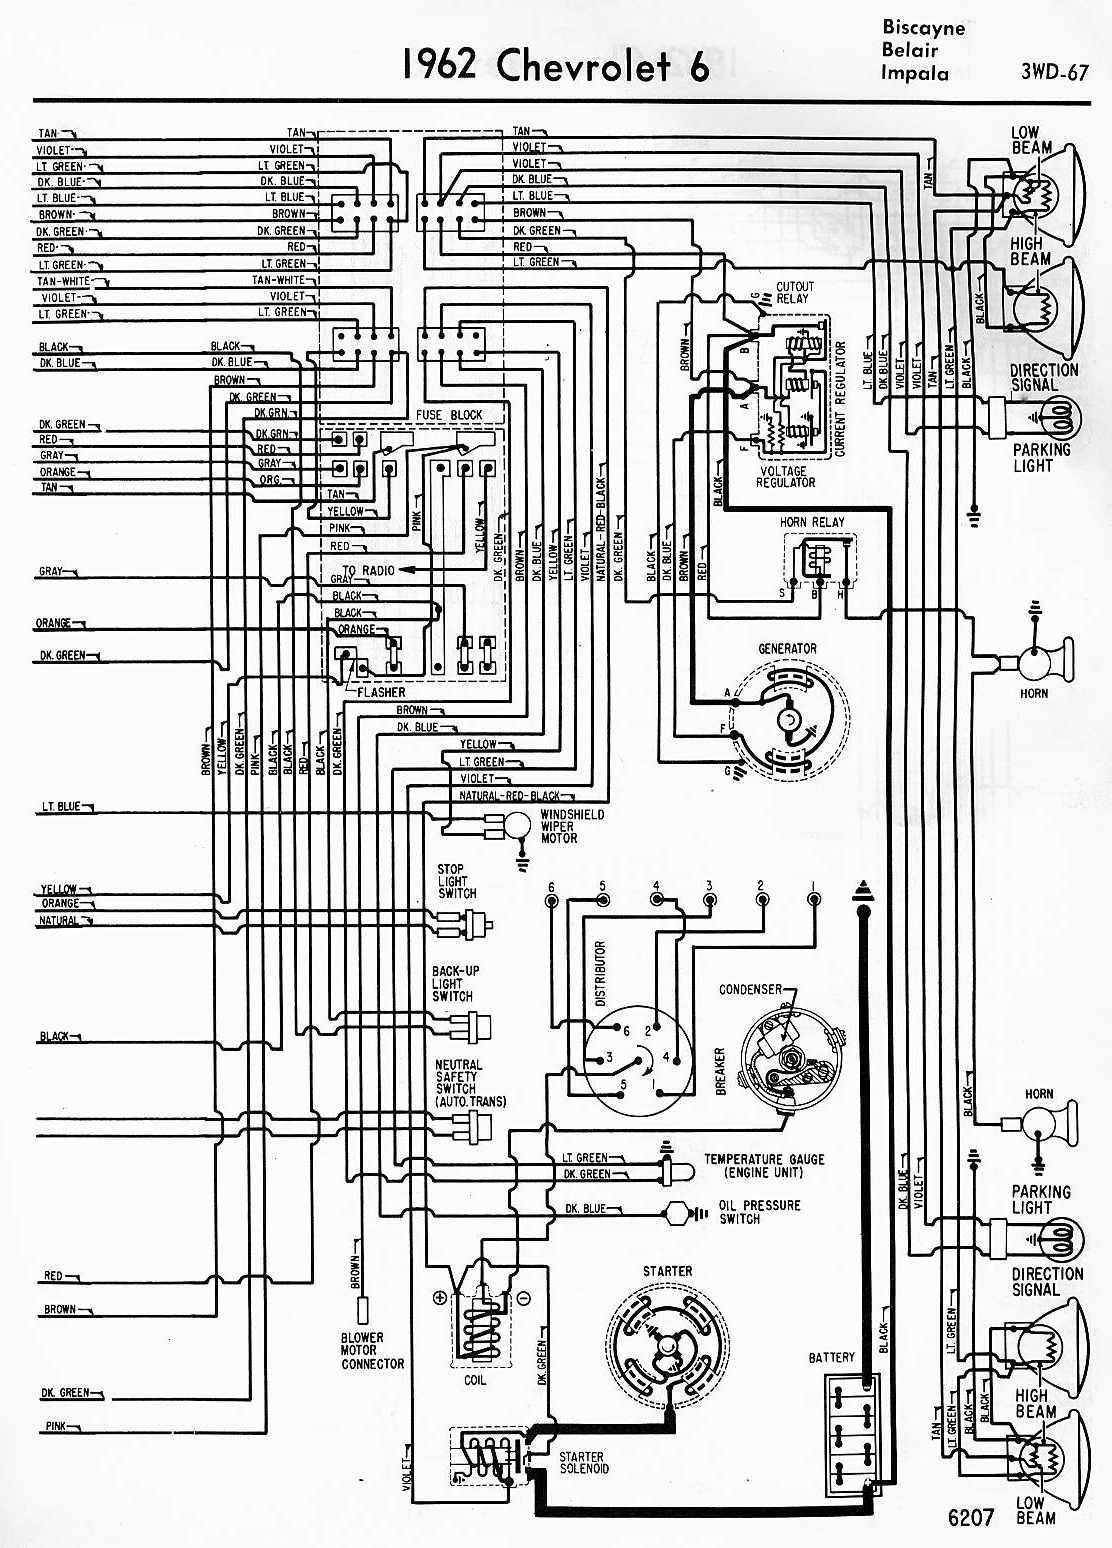 1998 S10 Wiring Diagram Blower - Free Car Wiring Diagrams •